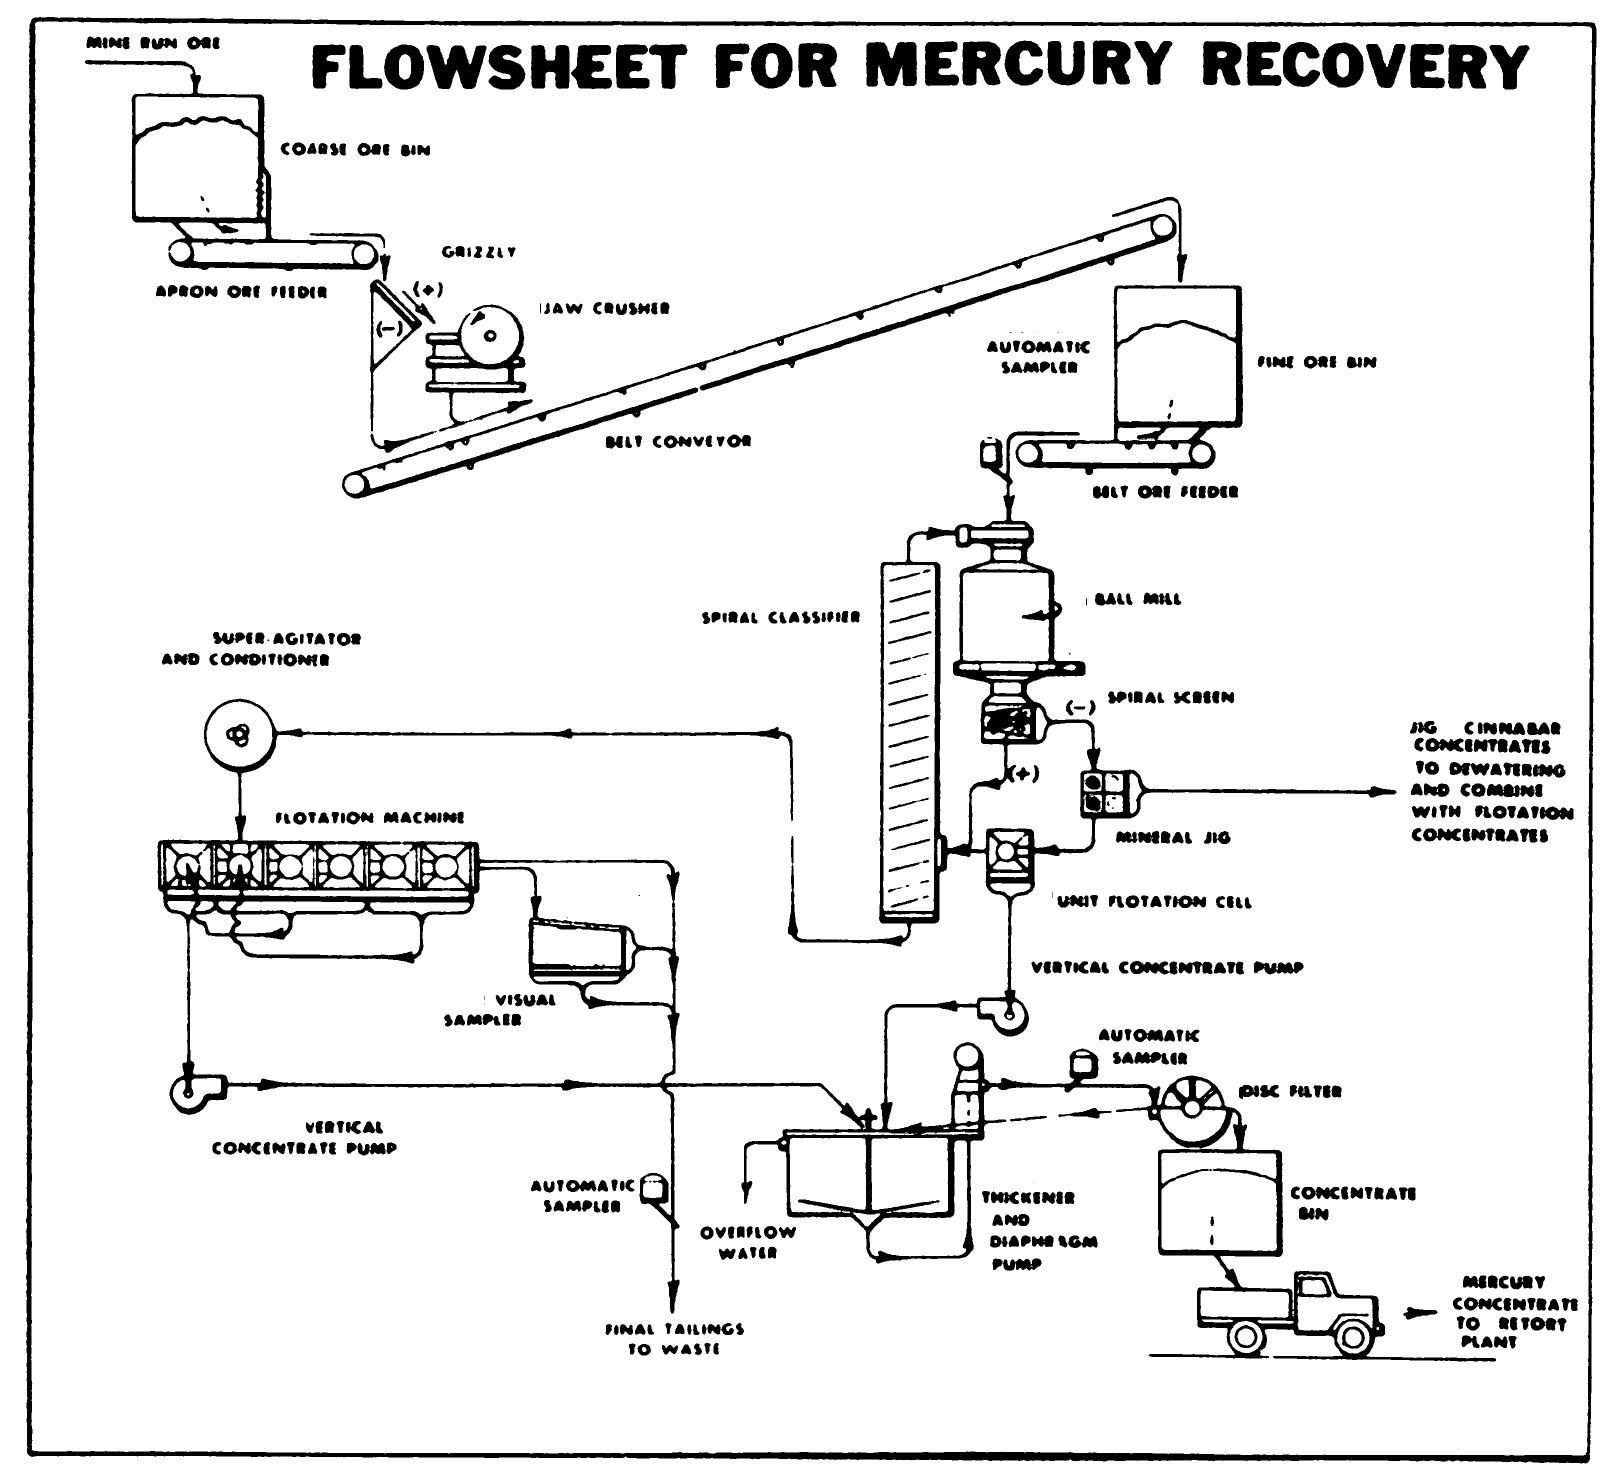 How is Mercury Extracted from Cinnabar Ore